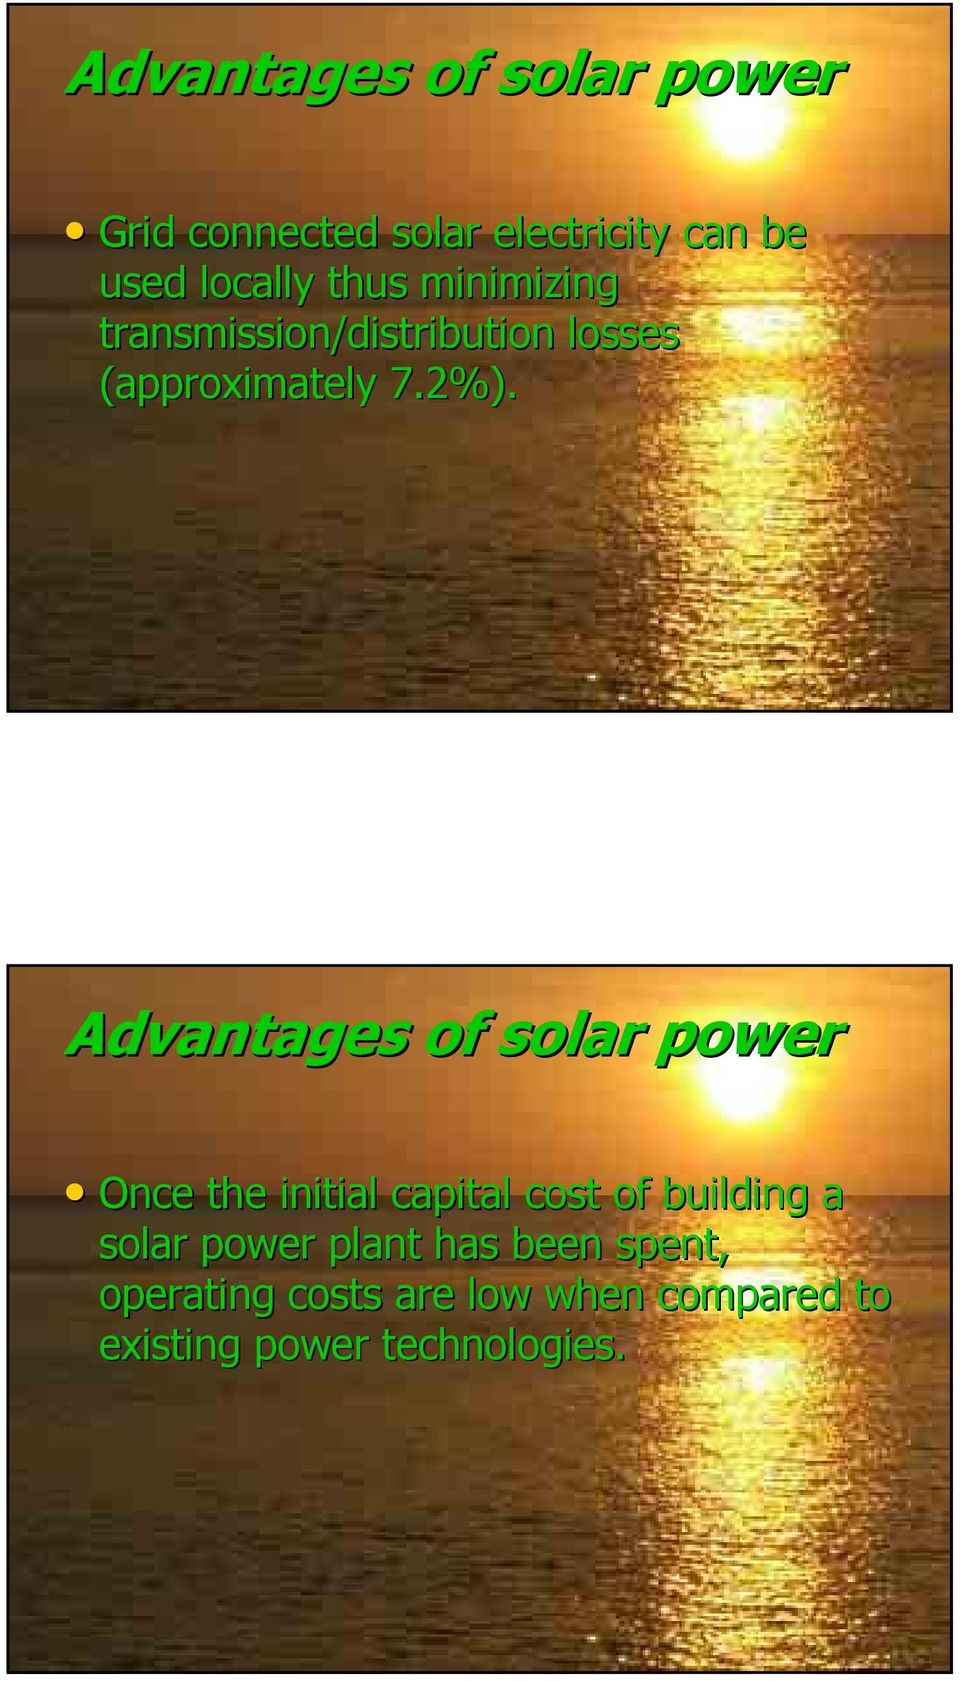 Advantages of solar power Once the initial capital cost of building a solar